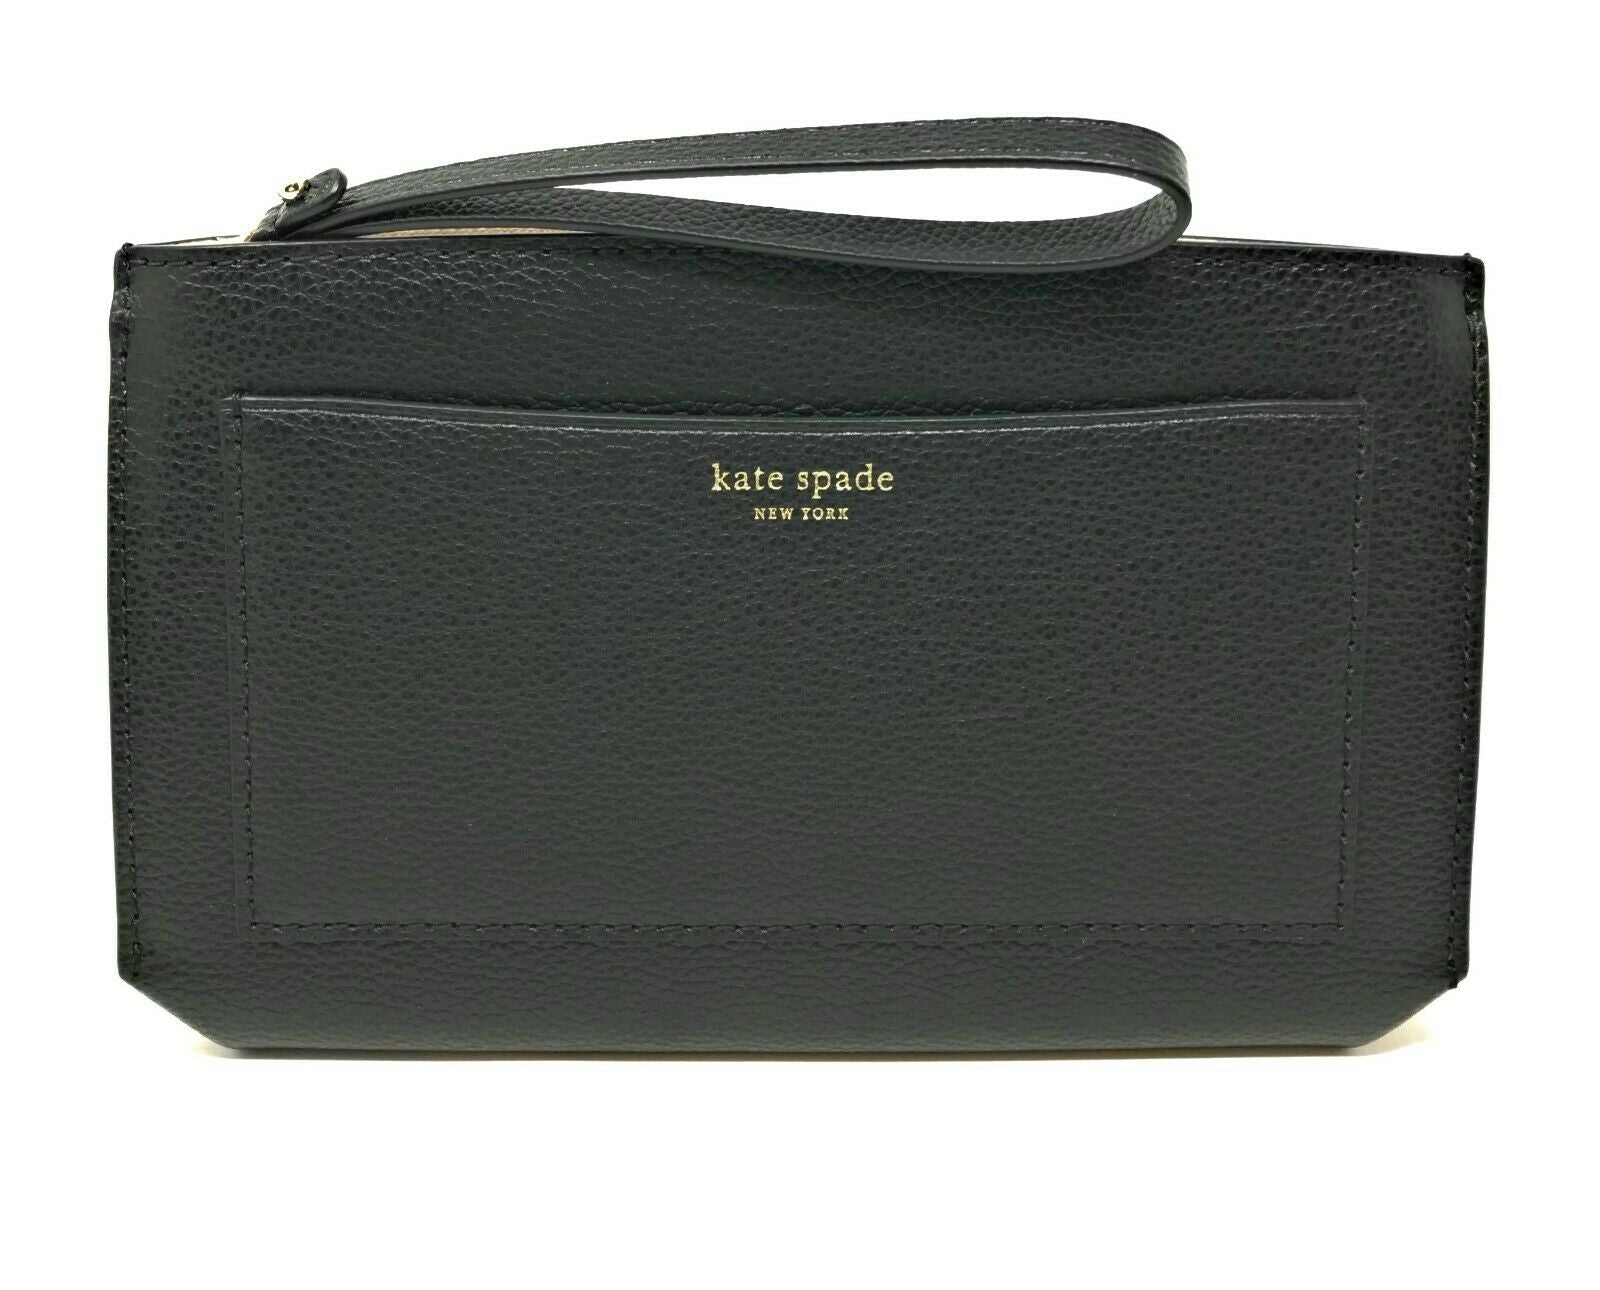 Kate Spade Eva Wallet Clutch Wristlet Black Warm Beige Leather WLRU5360 $189